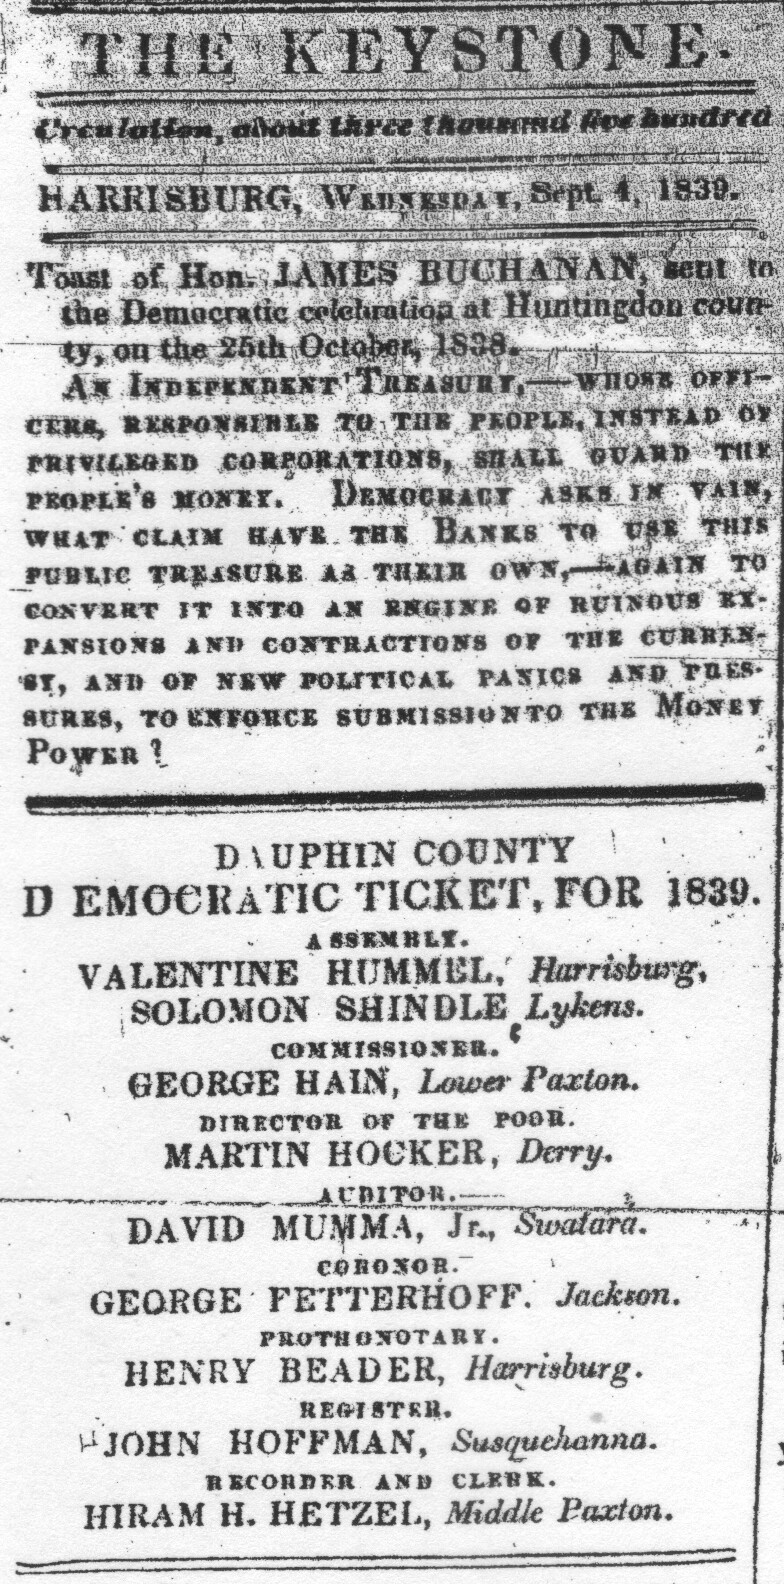 1839 Dauphin County Democratic Ticket